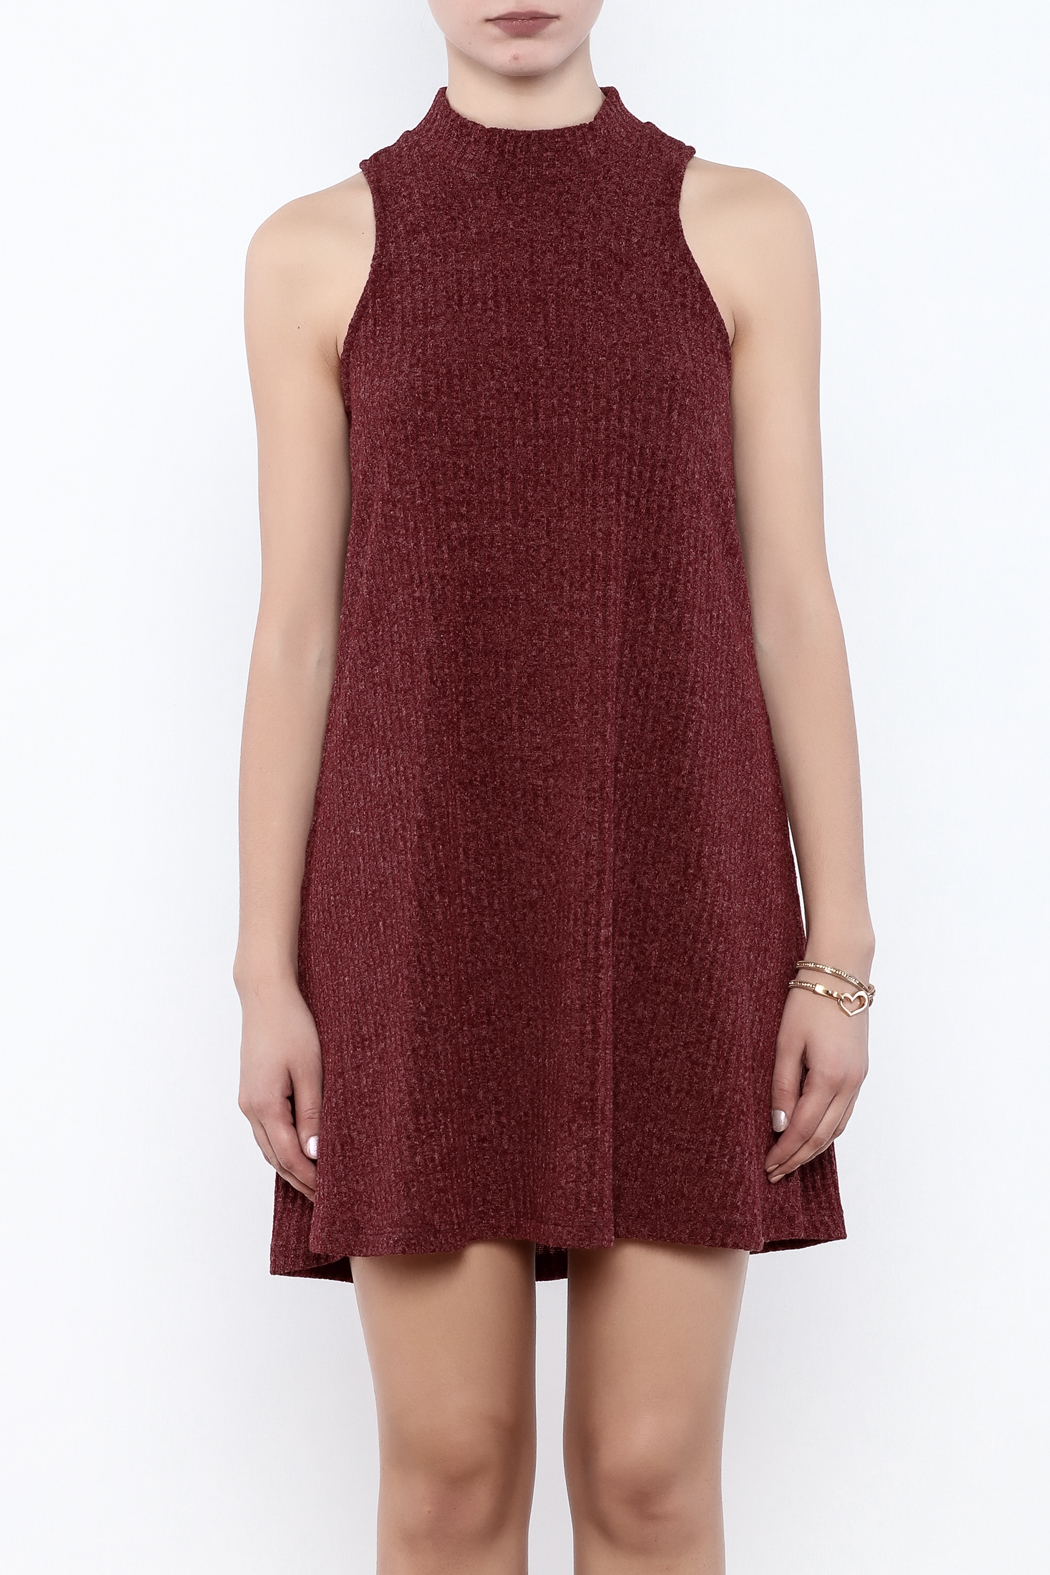 Veronica M Sleeveless Sweater Dress - Side Cropped Image